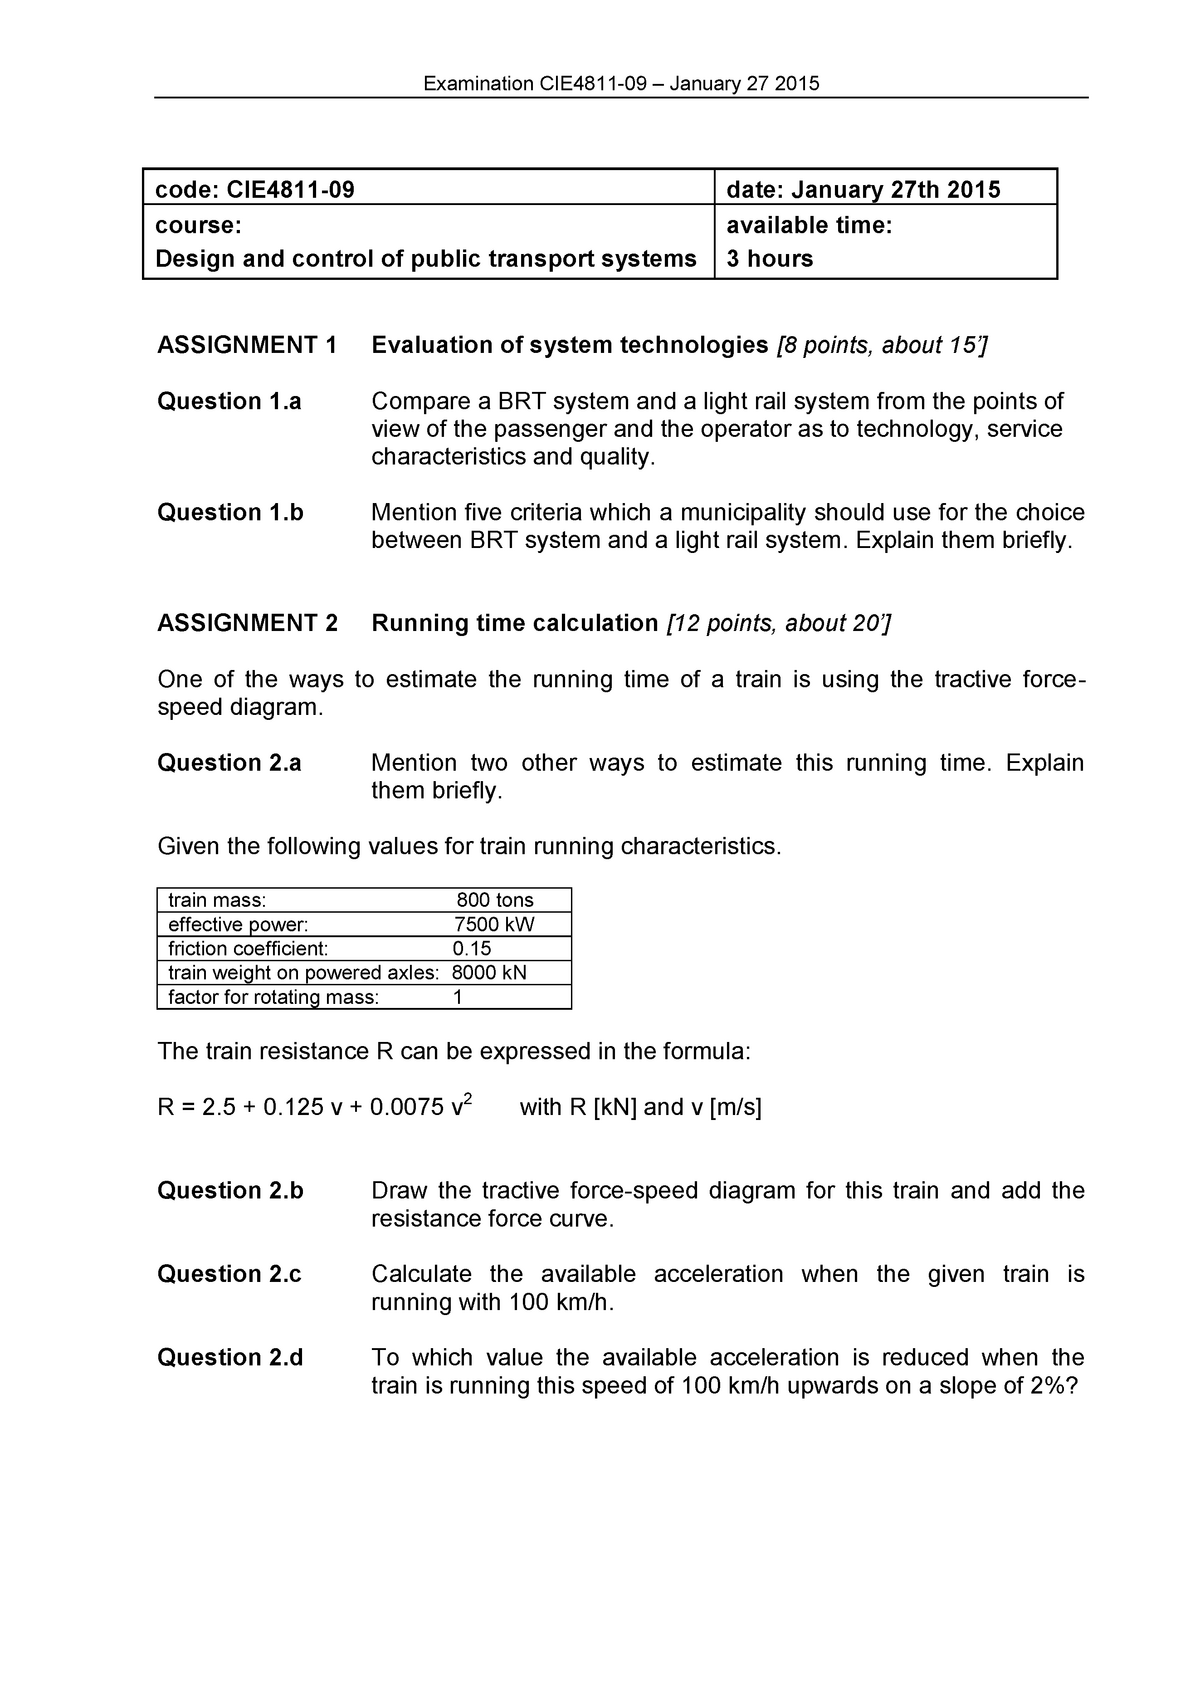 Exam 2015 - CIE4811-09: Planning and Operations of Public